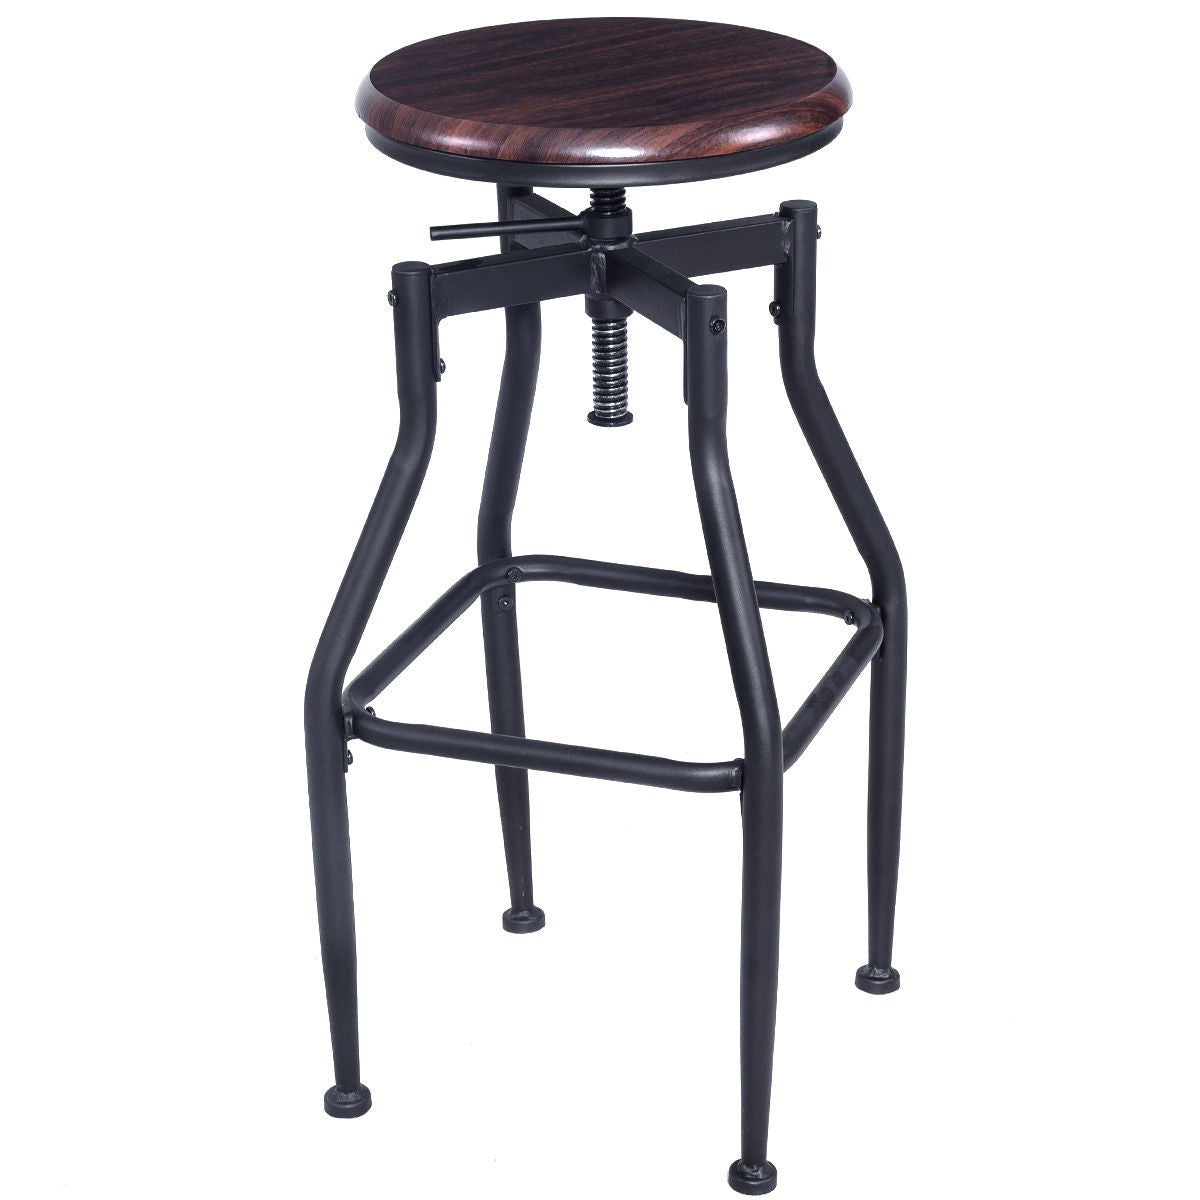 Incredible Wood Top Height Adjustable Swivel Vintage Bar Stool Squirreltailoven Fun Painted Chair Ideas Images Squirreltailovenorg